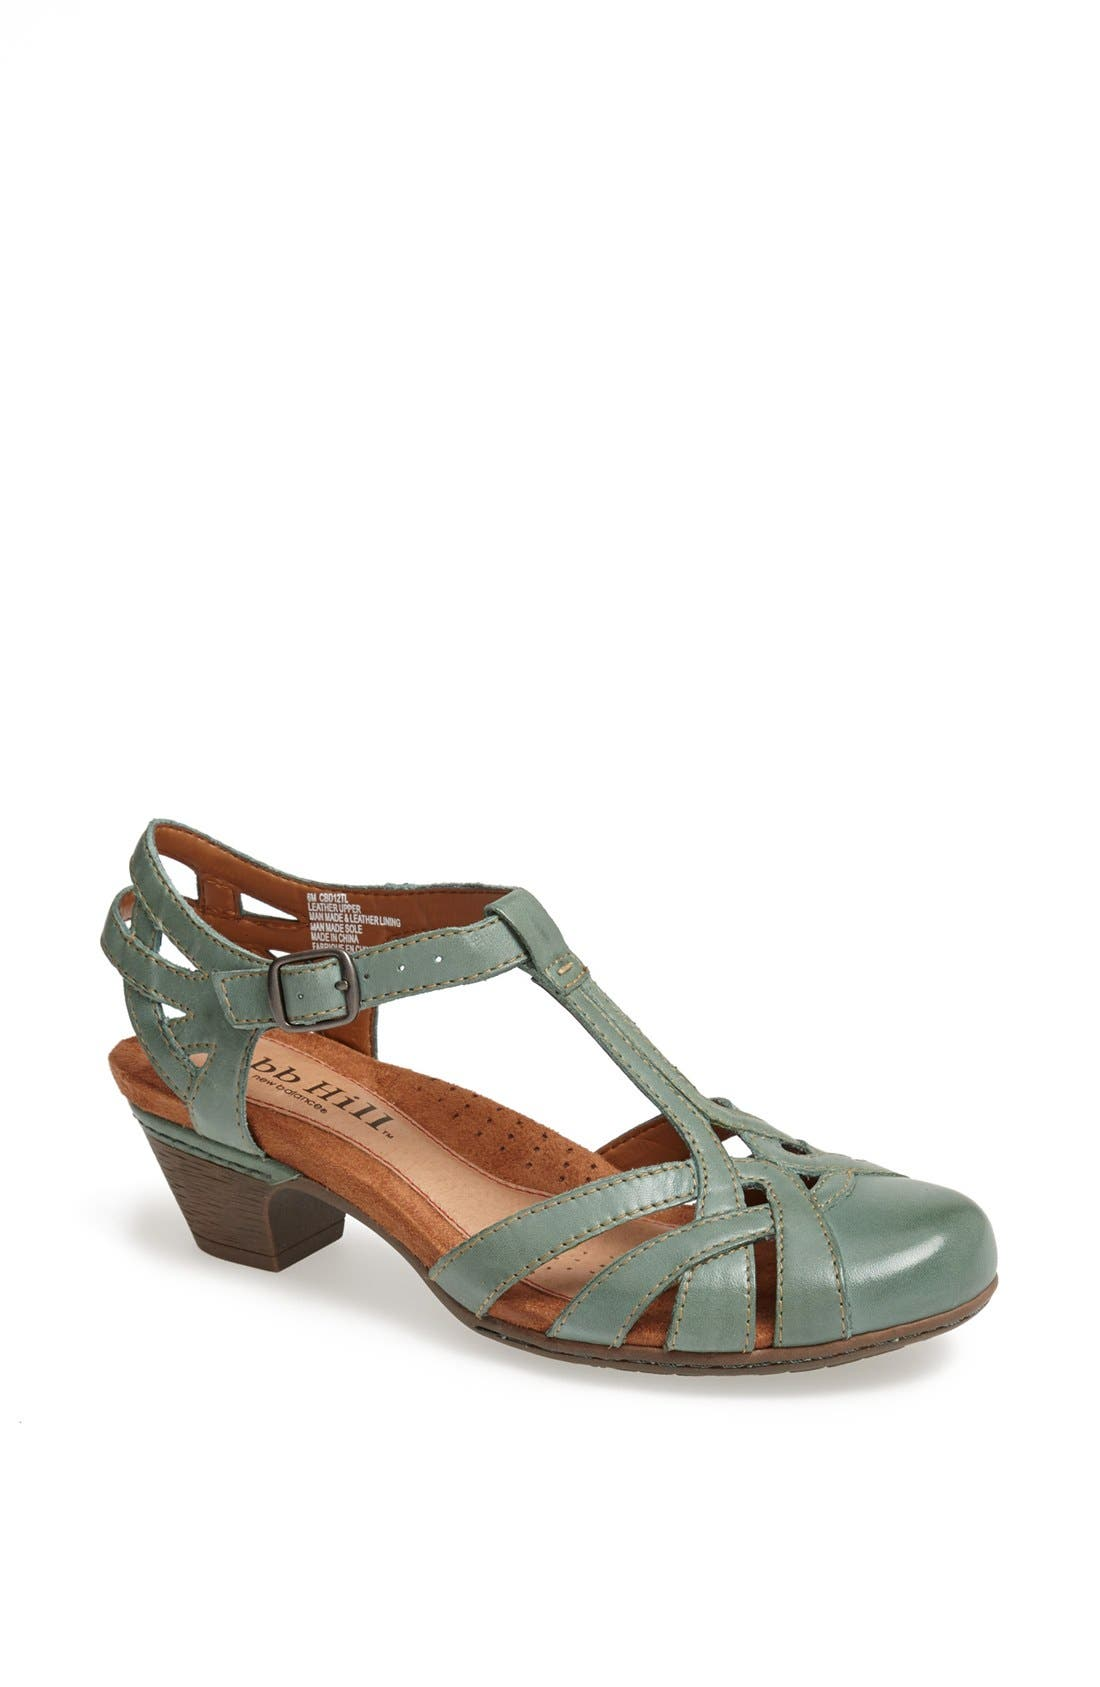 Vintage Sandals | Wedges, Espadrilles – 30s, 40s, 50s, 60s, 70s Womens Rockport Cobb Hill Aubrey Sandal Size 6.5 W - Bluegreen $99.95 AT vintagedancer.com